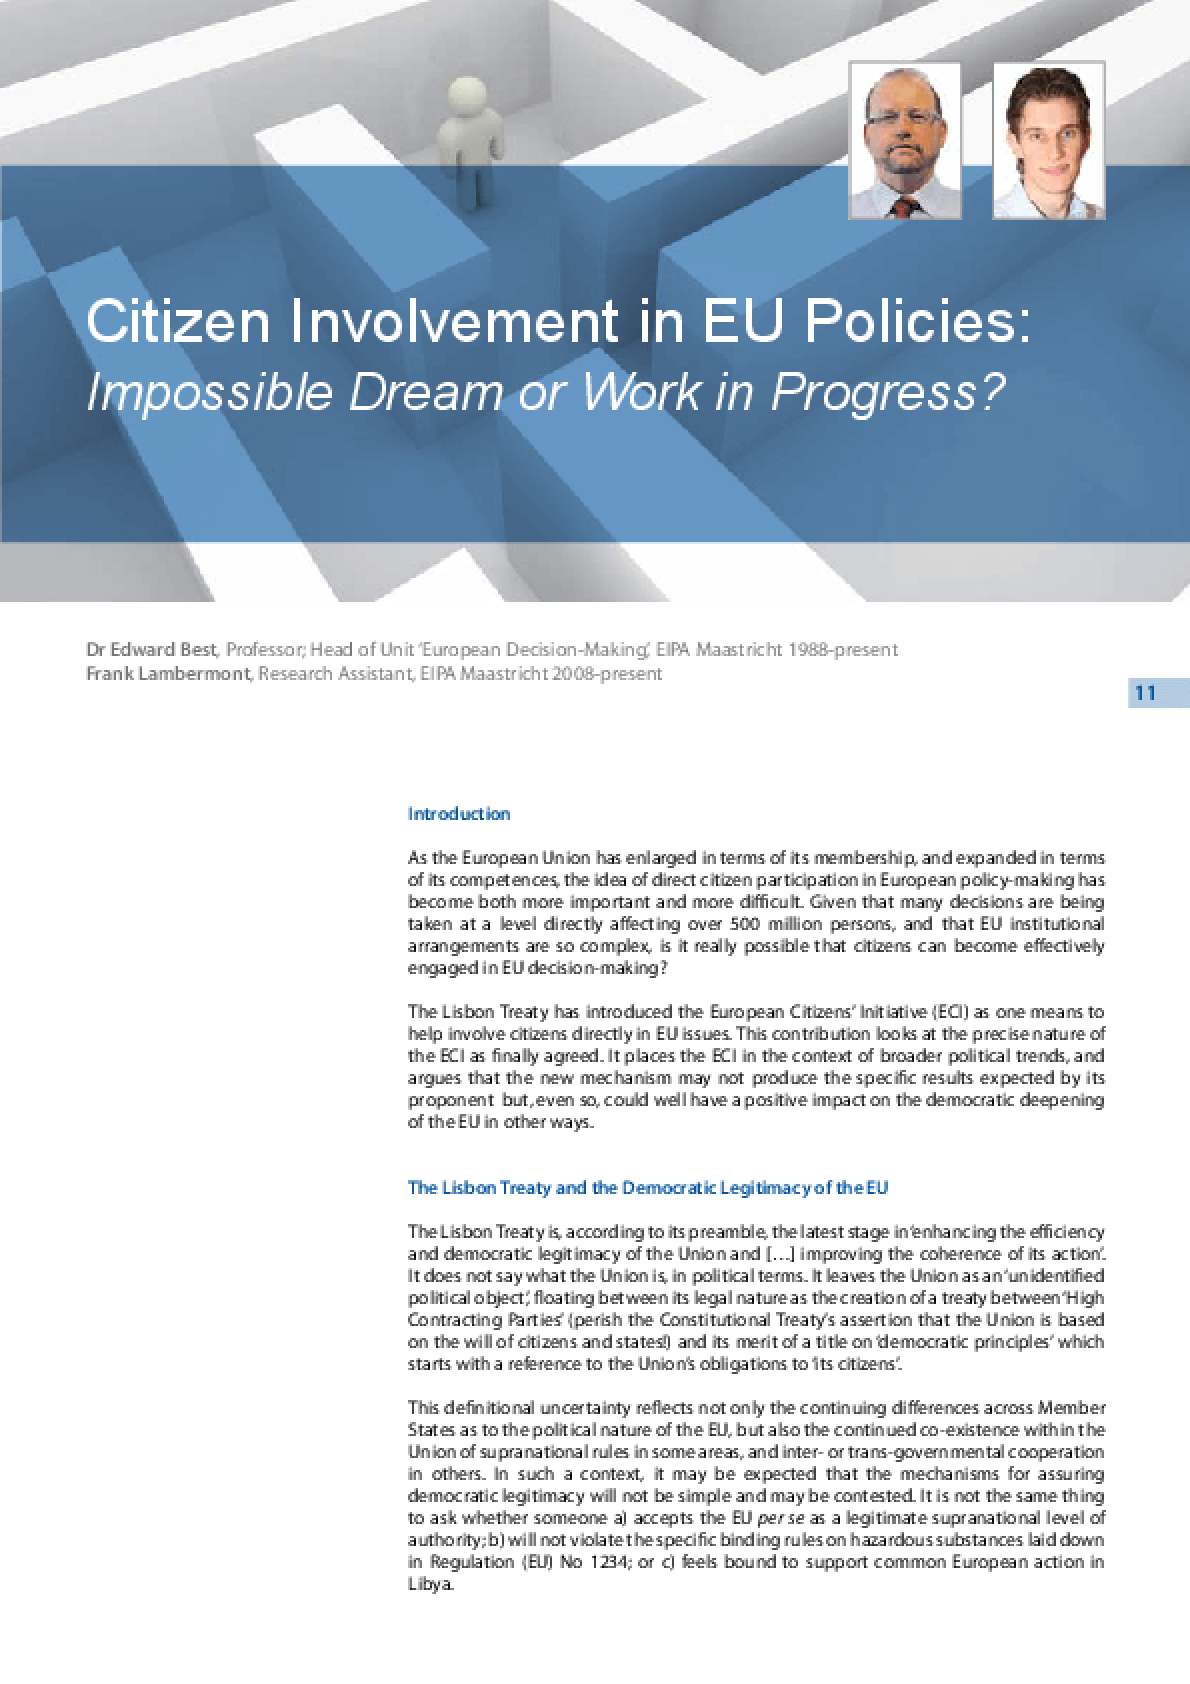 Citizen Involvement in EU Policies: Impossible Dream or Work in Progress?